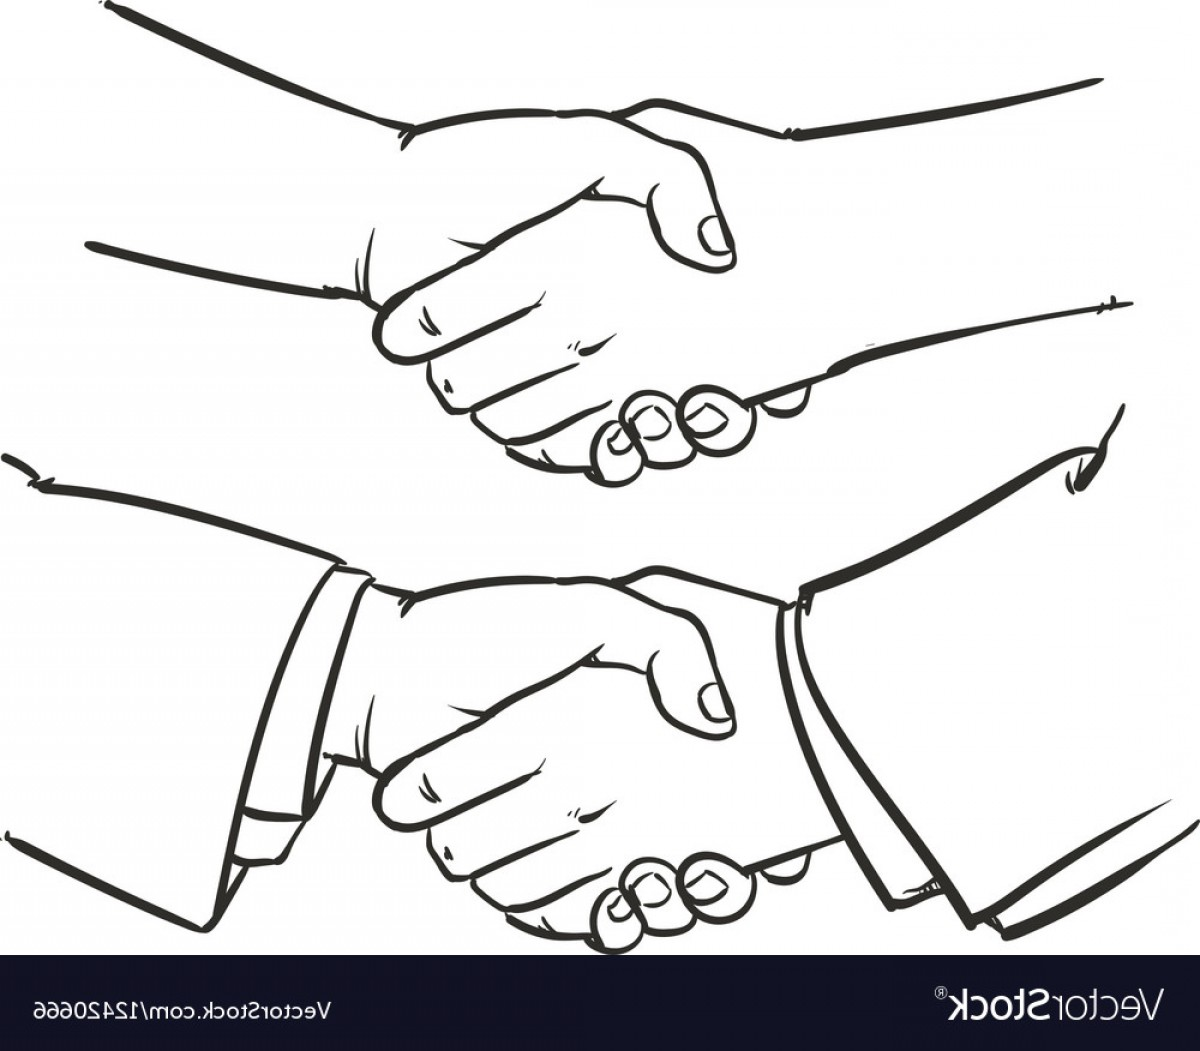 Handshake Clip Art Vector: Drawing Handshake Outline Hand Clip Art Vector